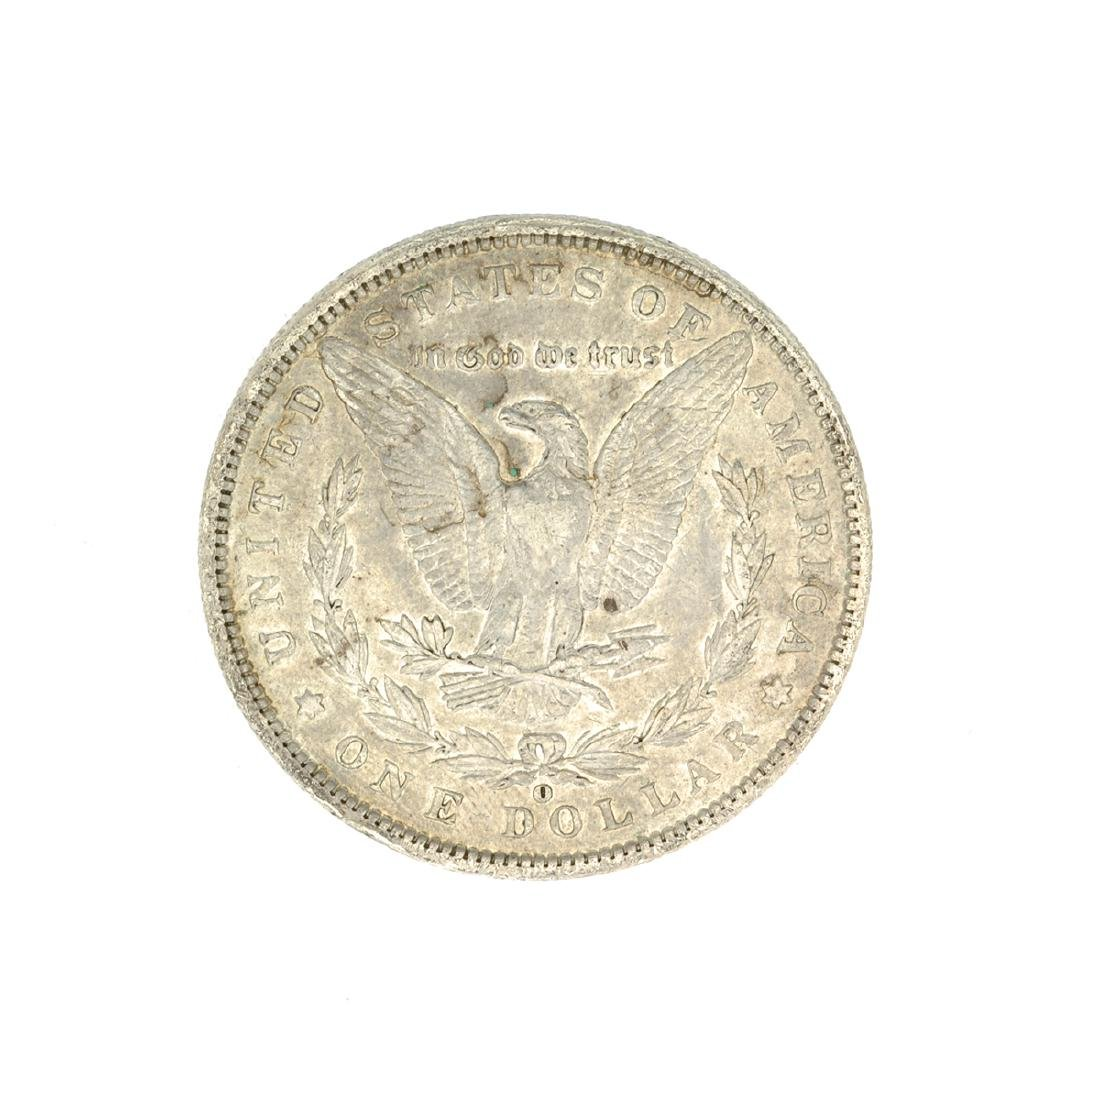 1900-O U.S. Morgan Silver Dollar Coin - 2